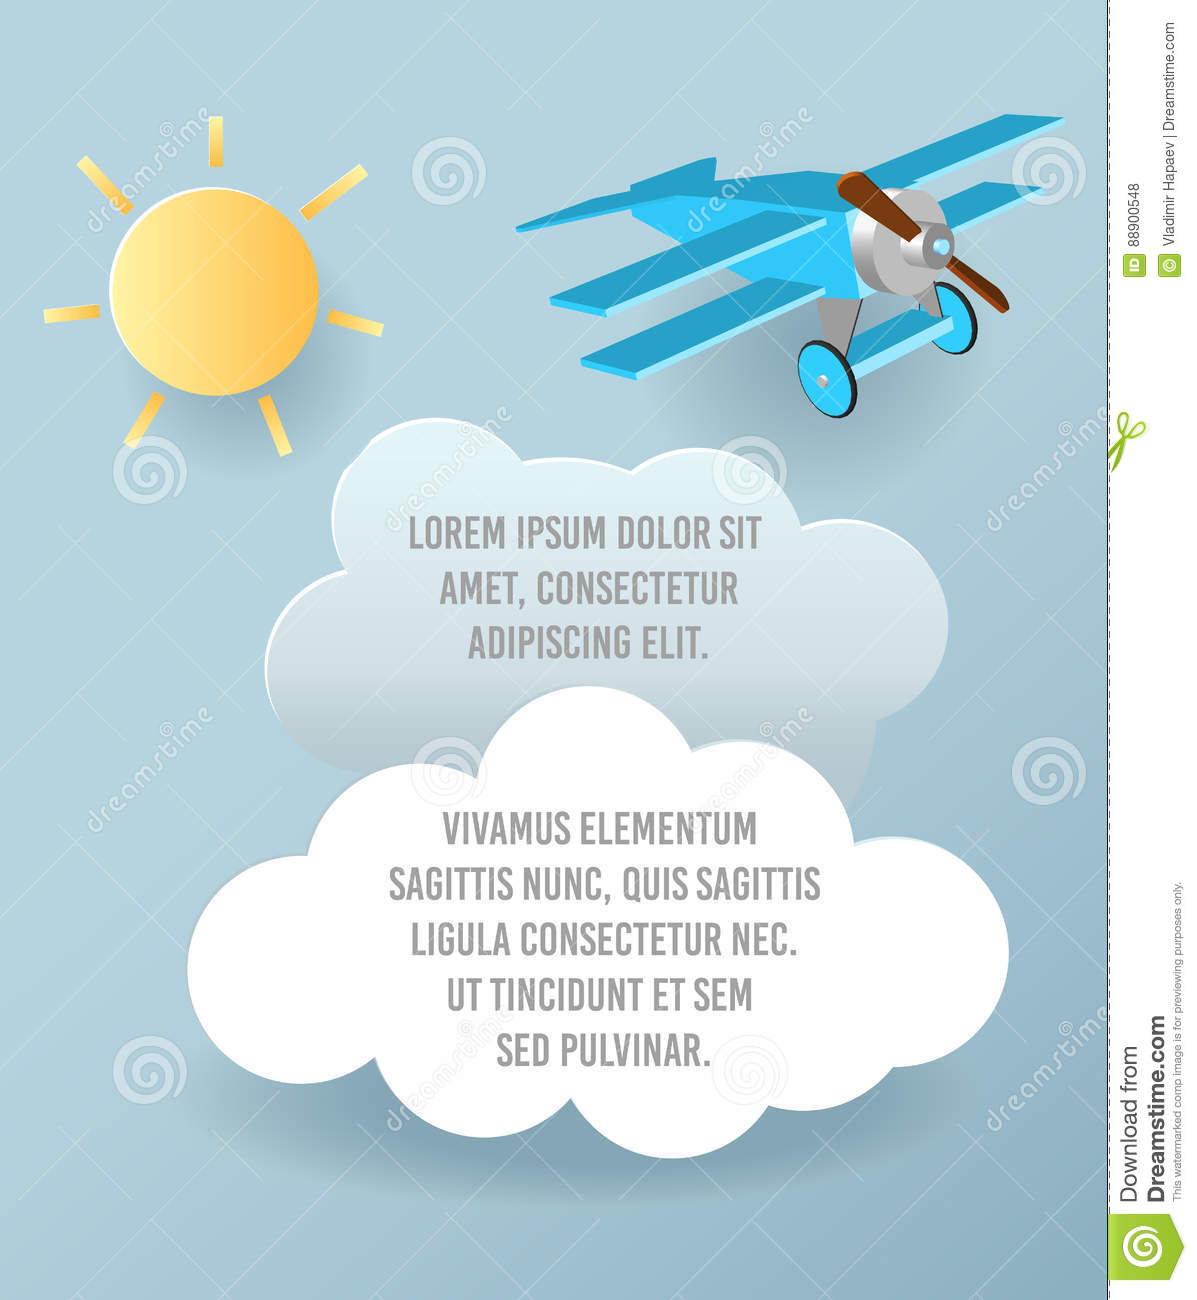 vector paper art of cloud and plane flying in the sky template